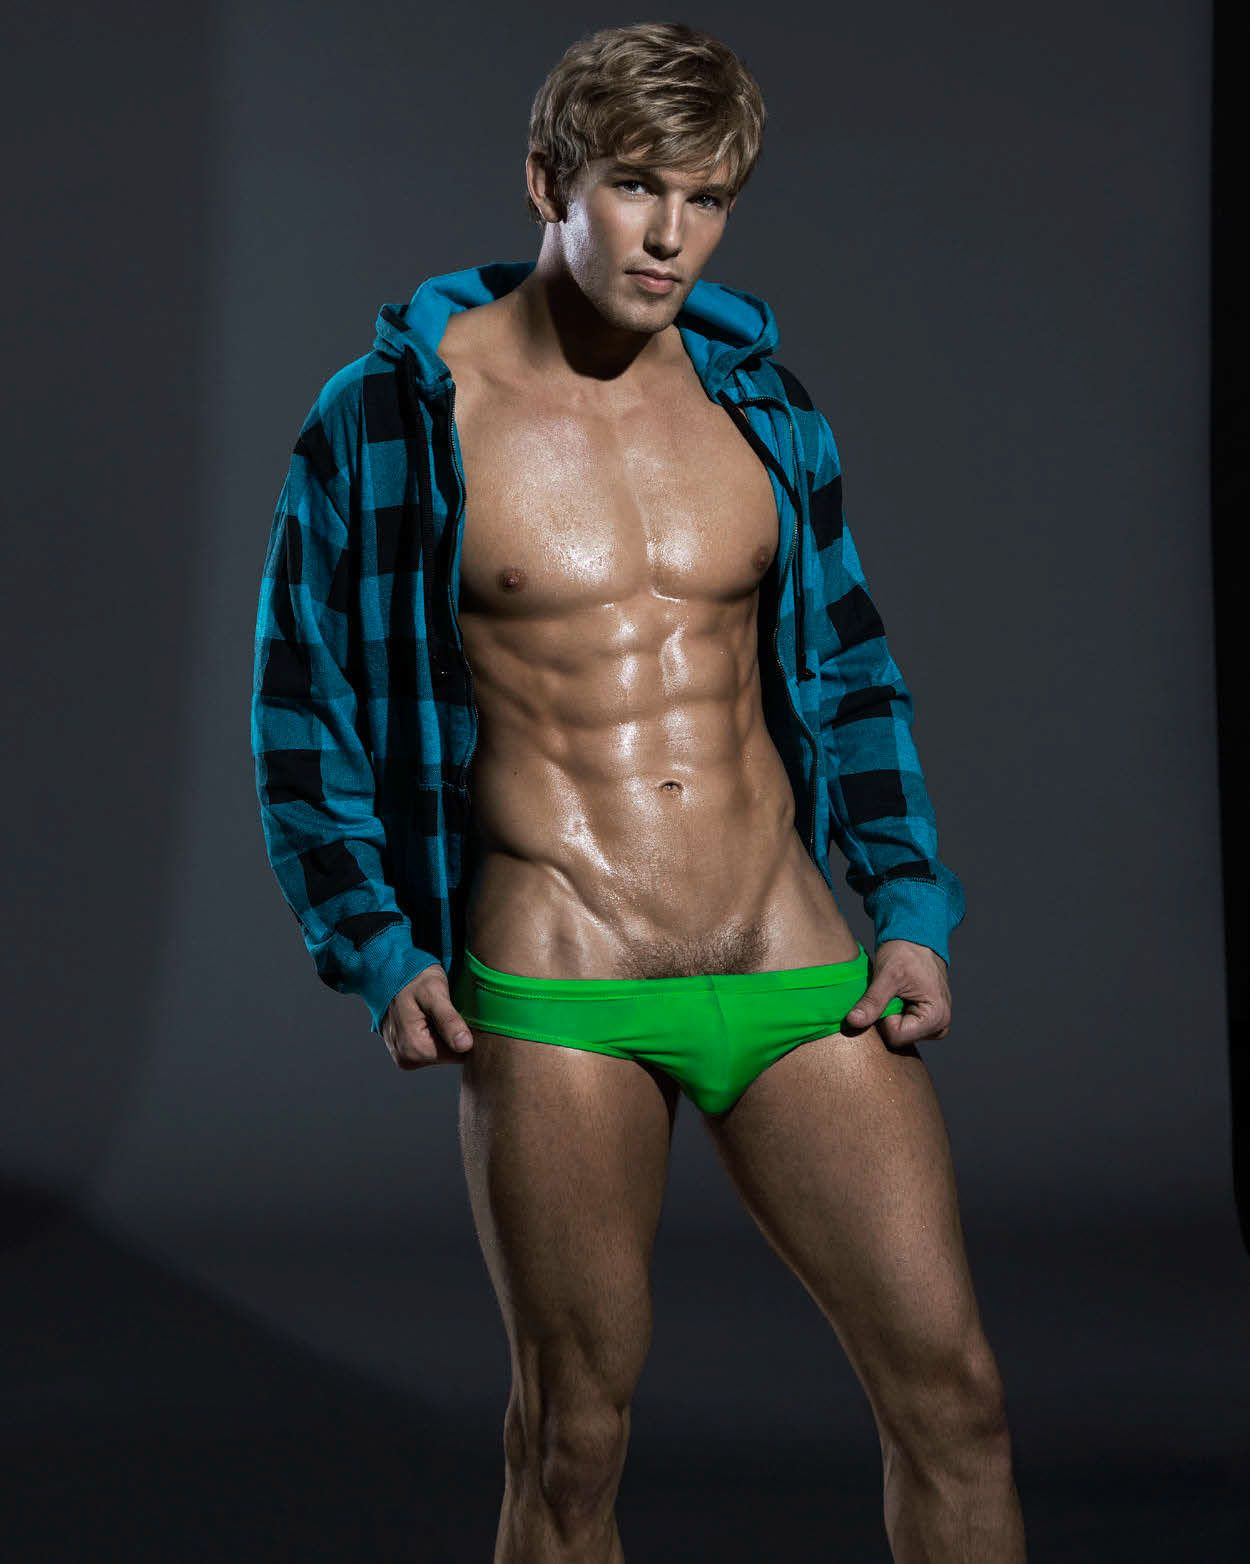 Jonathan Brownell | Jeremy Mc Swimwear | Pinterest ...